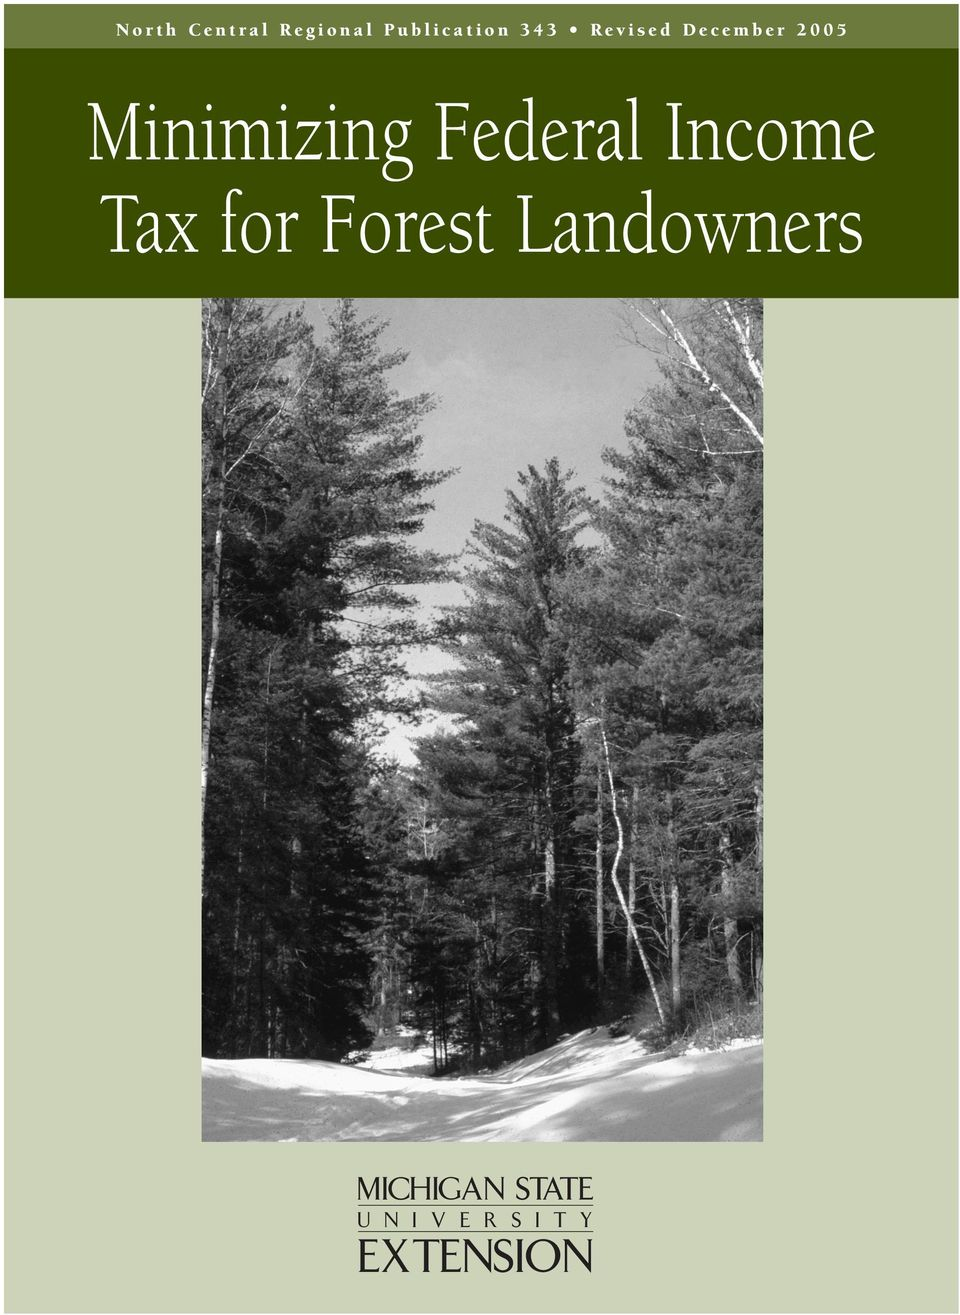 Federal Income Tax for Forest